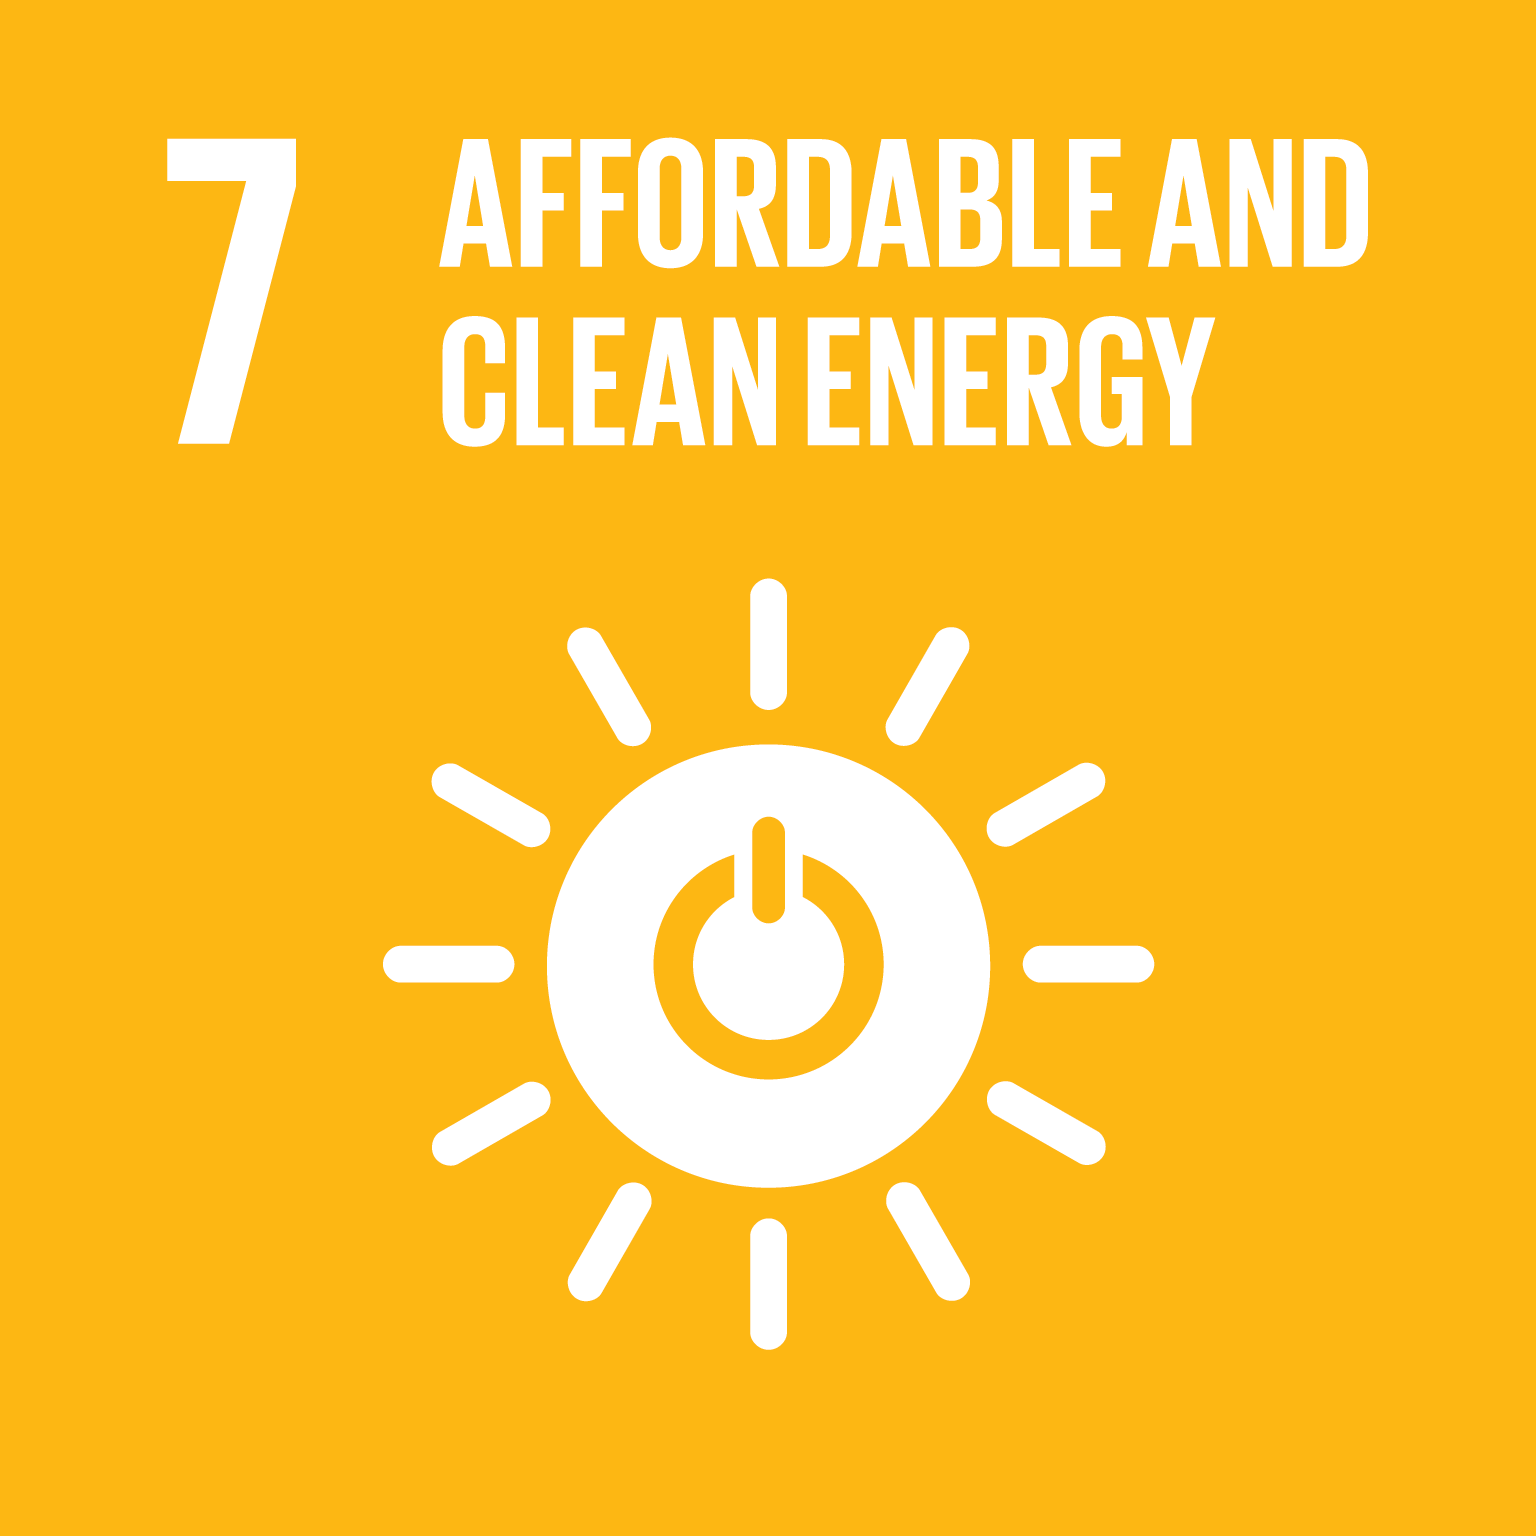 7: Affordable and Clean Energy